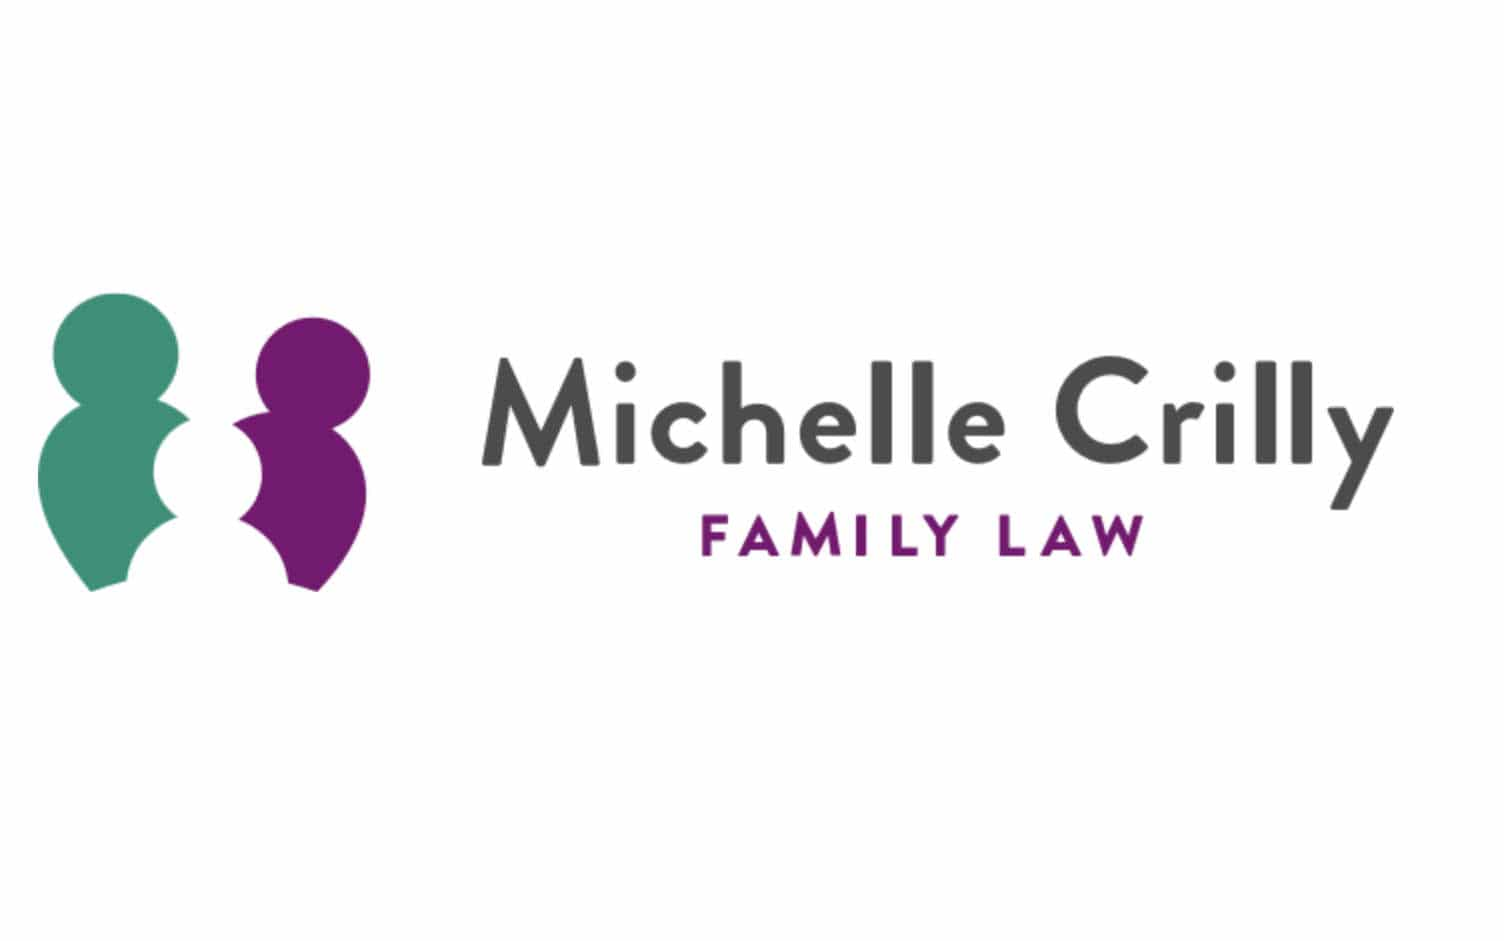 Michelle Crilly